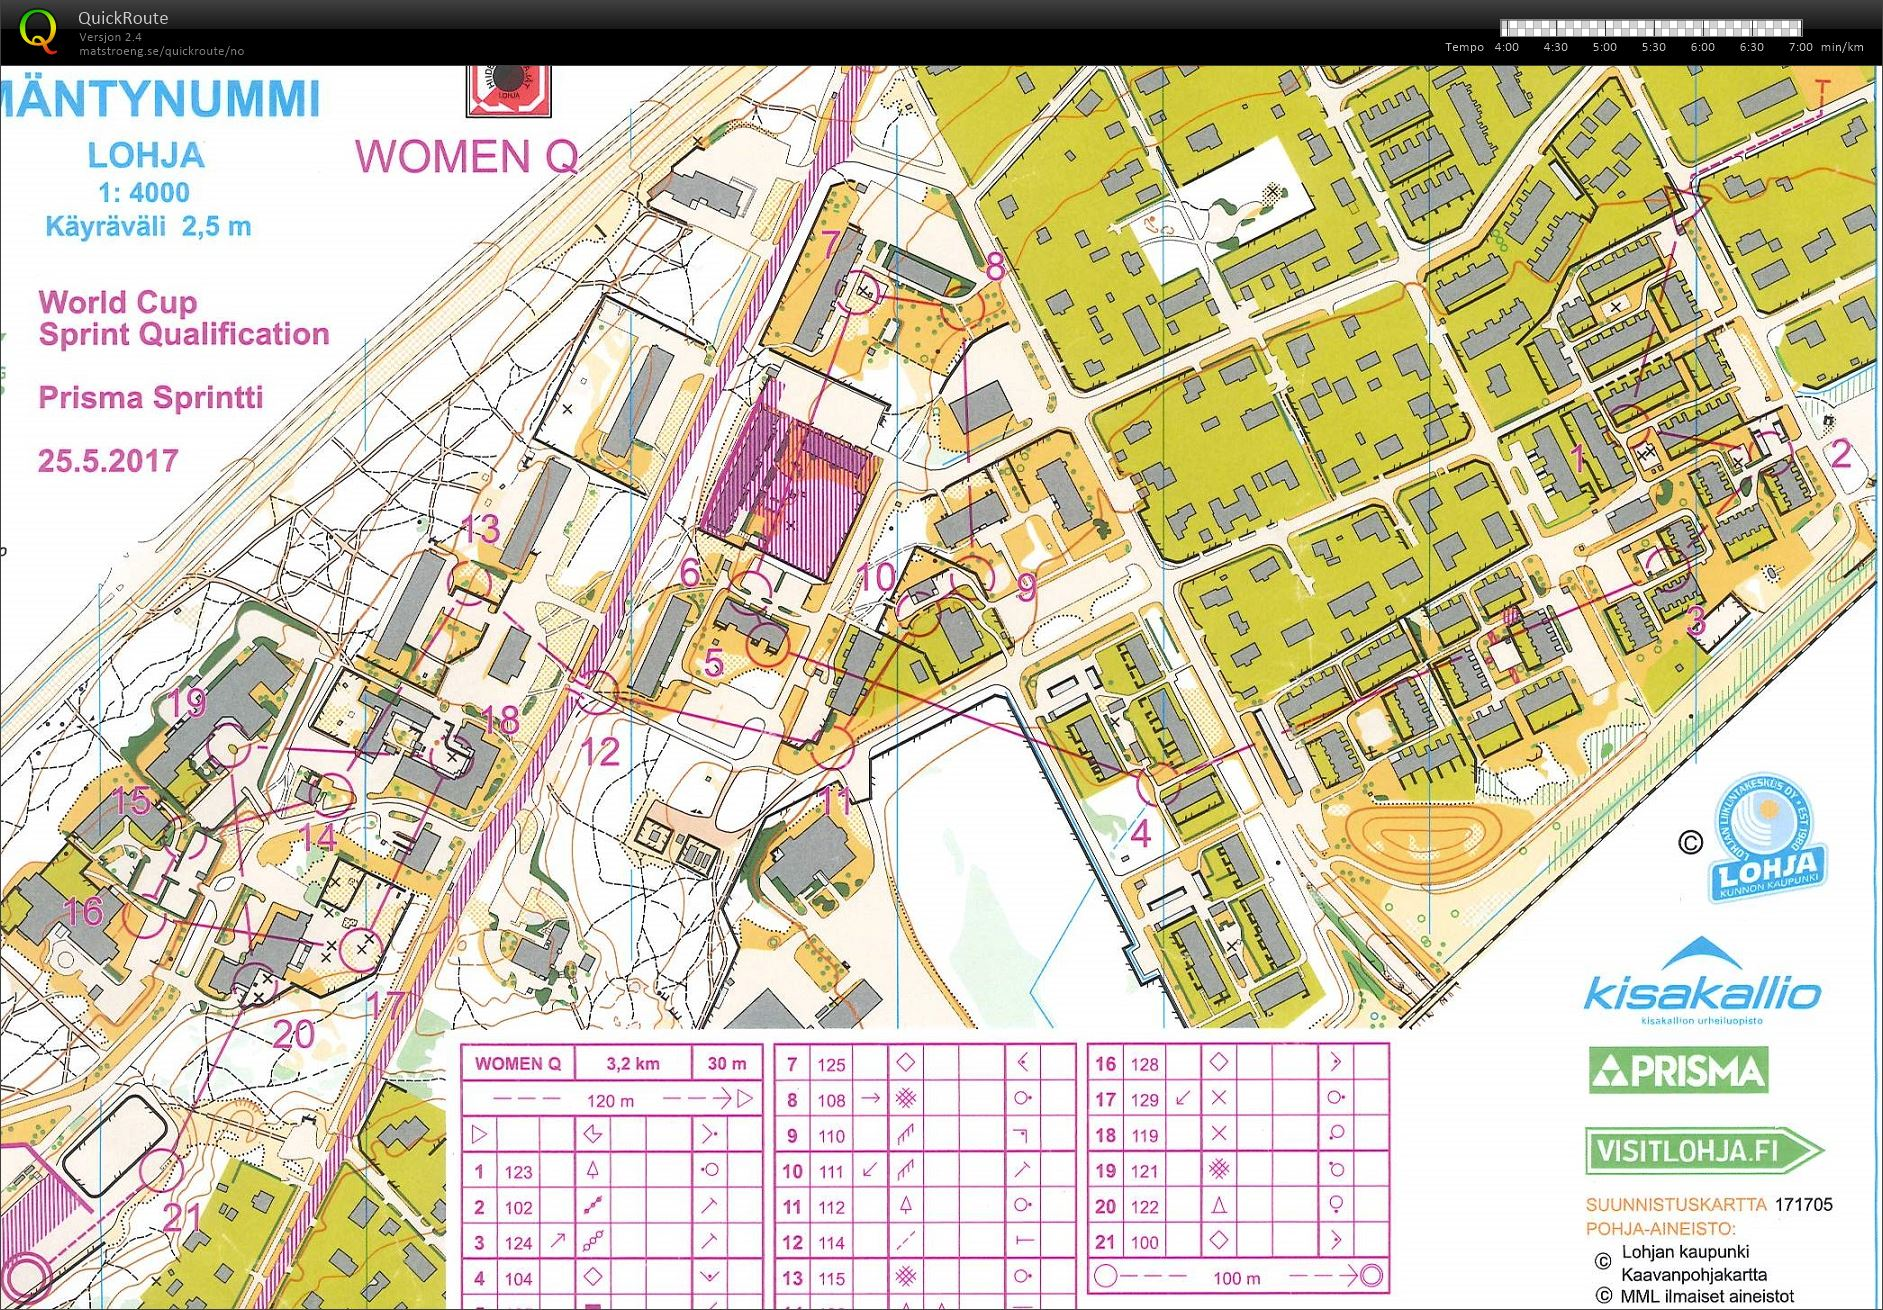 WC sprint Q May 25th 2017 Orienteering Map from Marianne Andersen